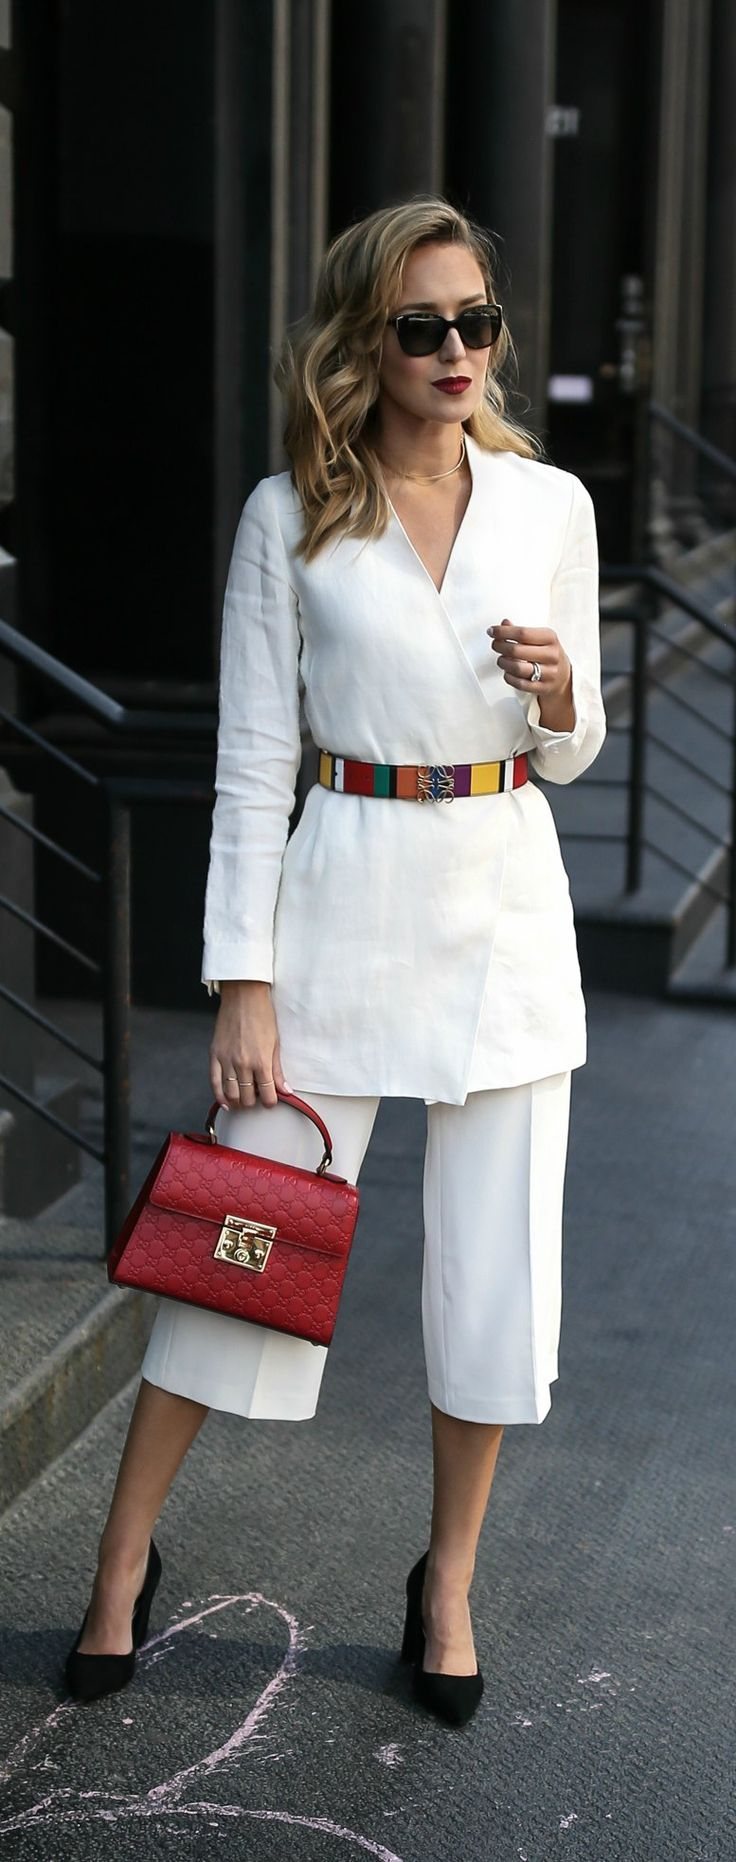 Top 10 Spring Trends to Know // Trend #3: 80s Redux // click the image for all the details! // ivory wrap linen blazer, ivory culottes, pant suit, red gucci bag, bold stripe colorful waist belt, pops of color, bold red lip, black block heel pointed toe pumps {theory, loewe, gucci, reiss, prada, work wear}